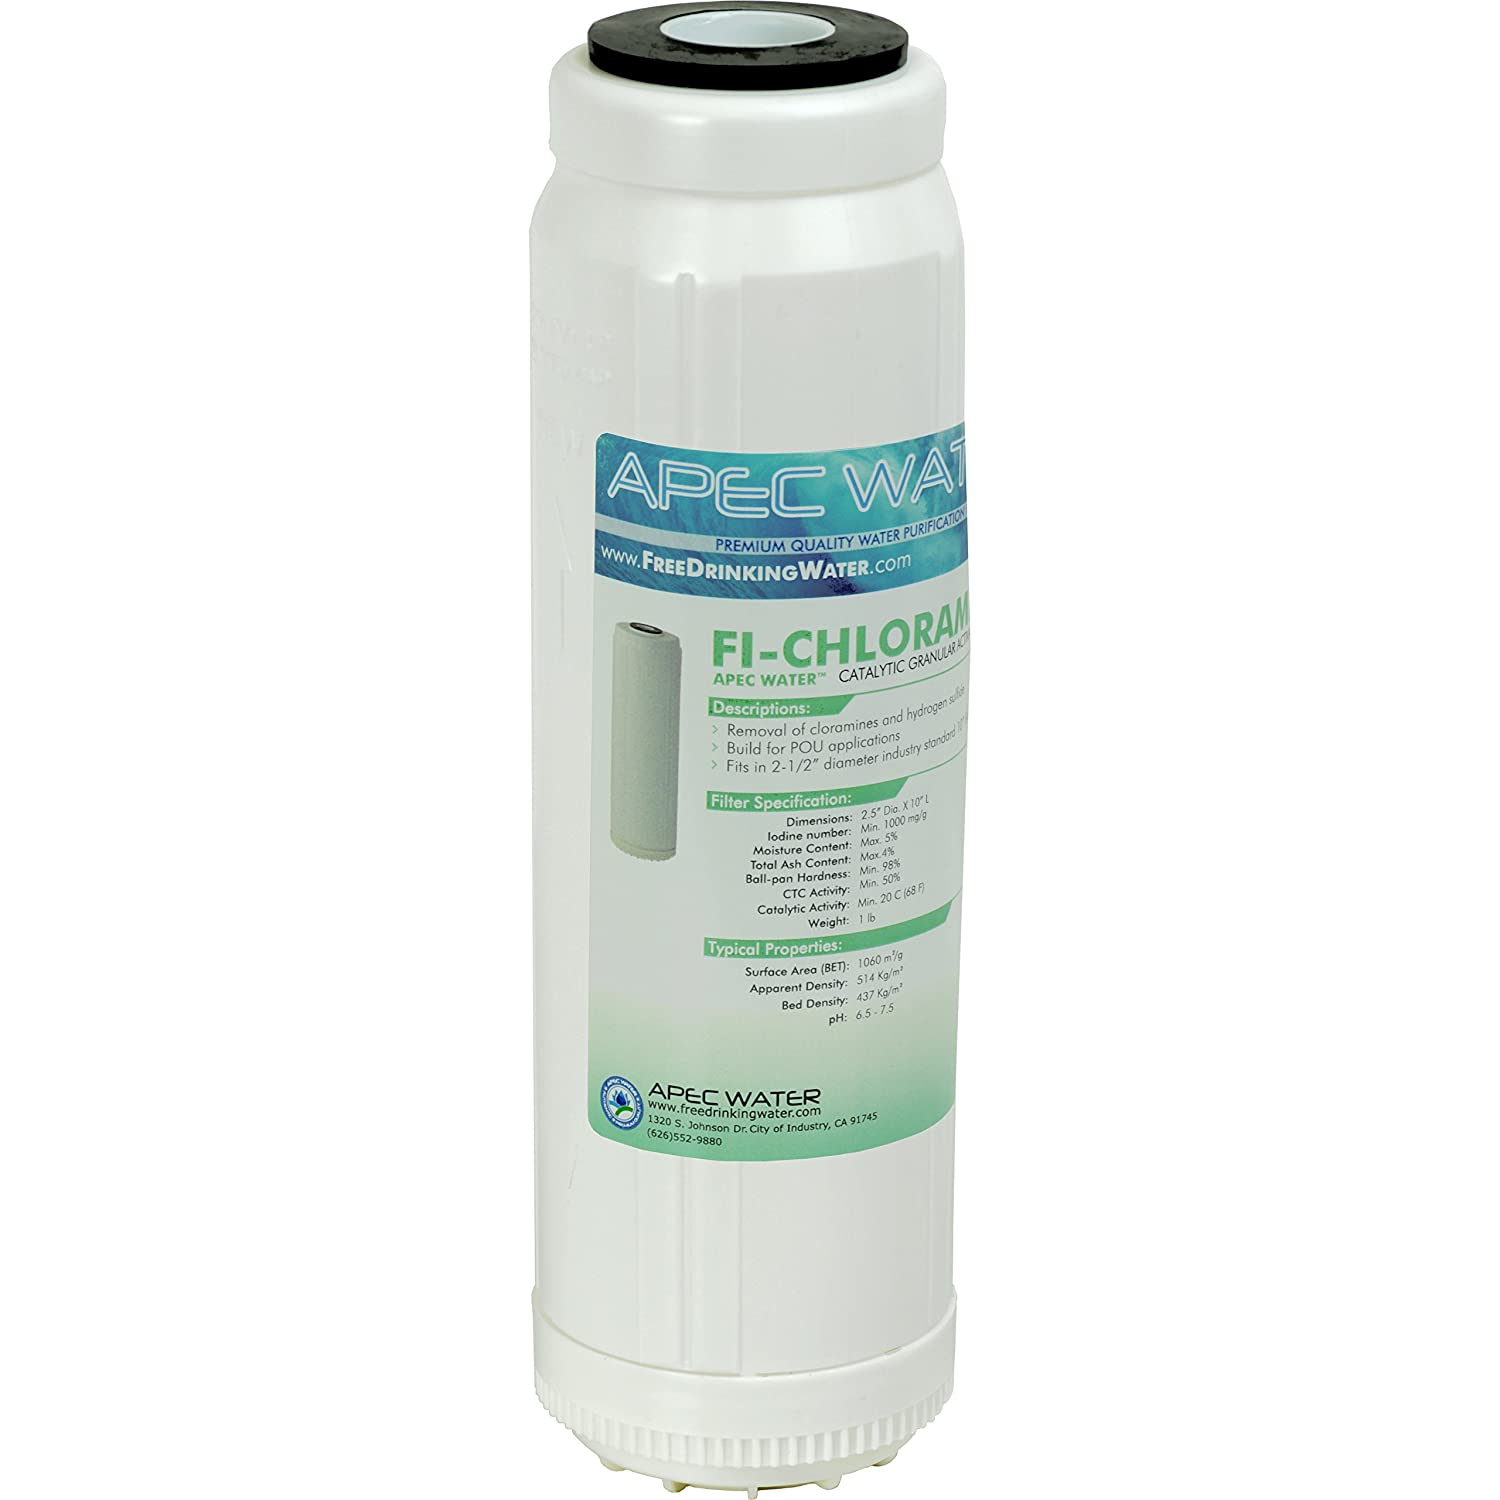 What kind of disinfectant can replace chloramine during egg processing in the dining room Based on which document